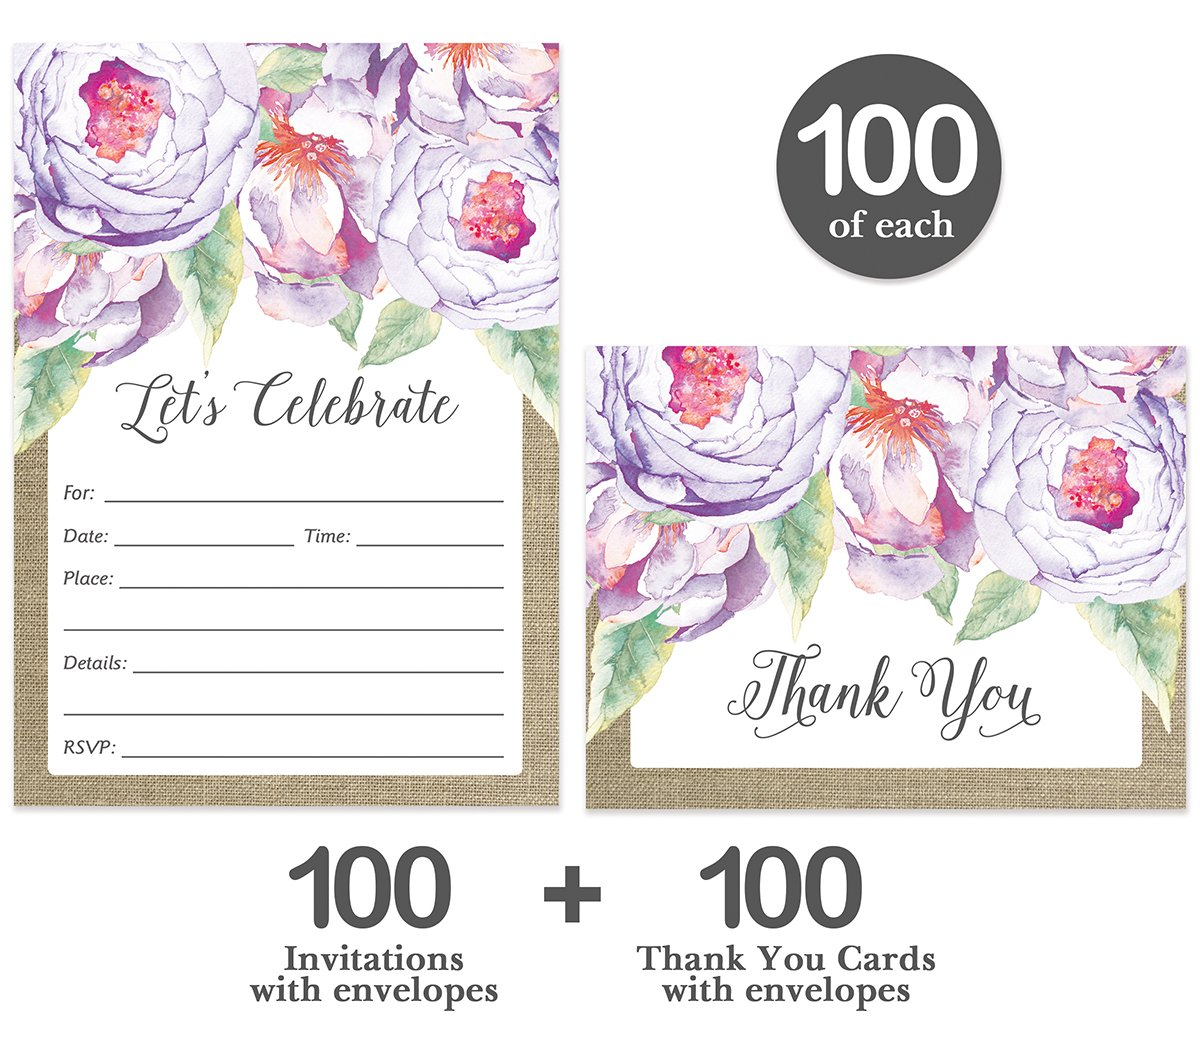 All Occasion Invitations & Folded Thank You Cards Matching Set with Envelopes ( 100 of Each ) Beautiful for Bridal Shower Engagement Birthday Party Fill-in Invites & Thank You Notes Best Value Pair by Digibuddha (Image #2)